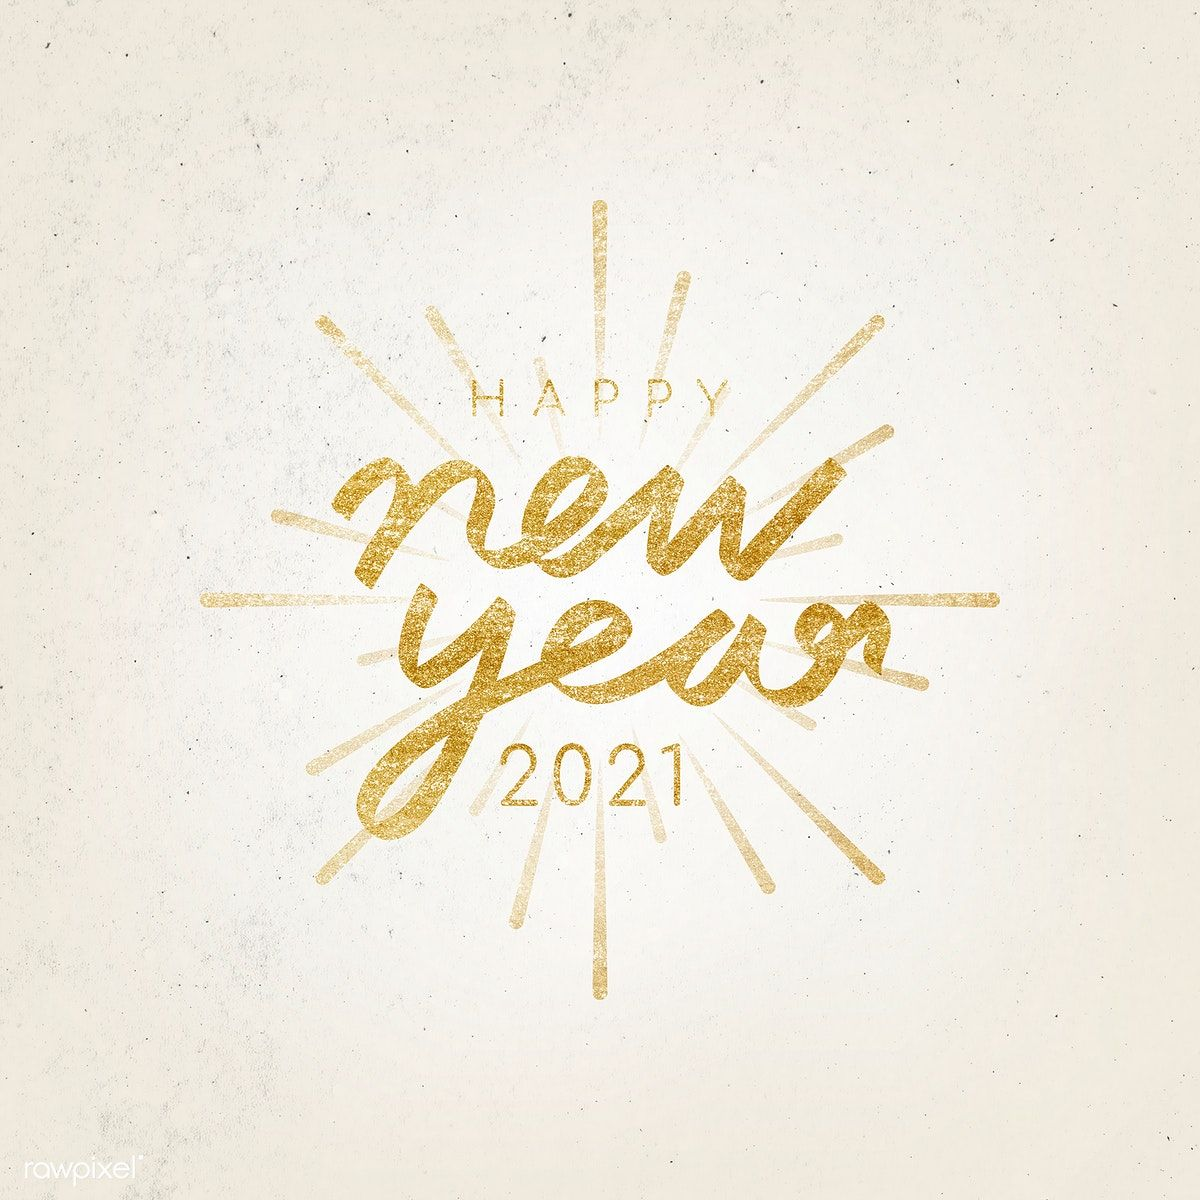 Happy New Year 2021 typography illustration free image